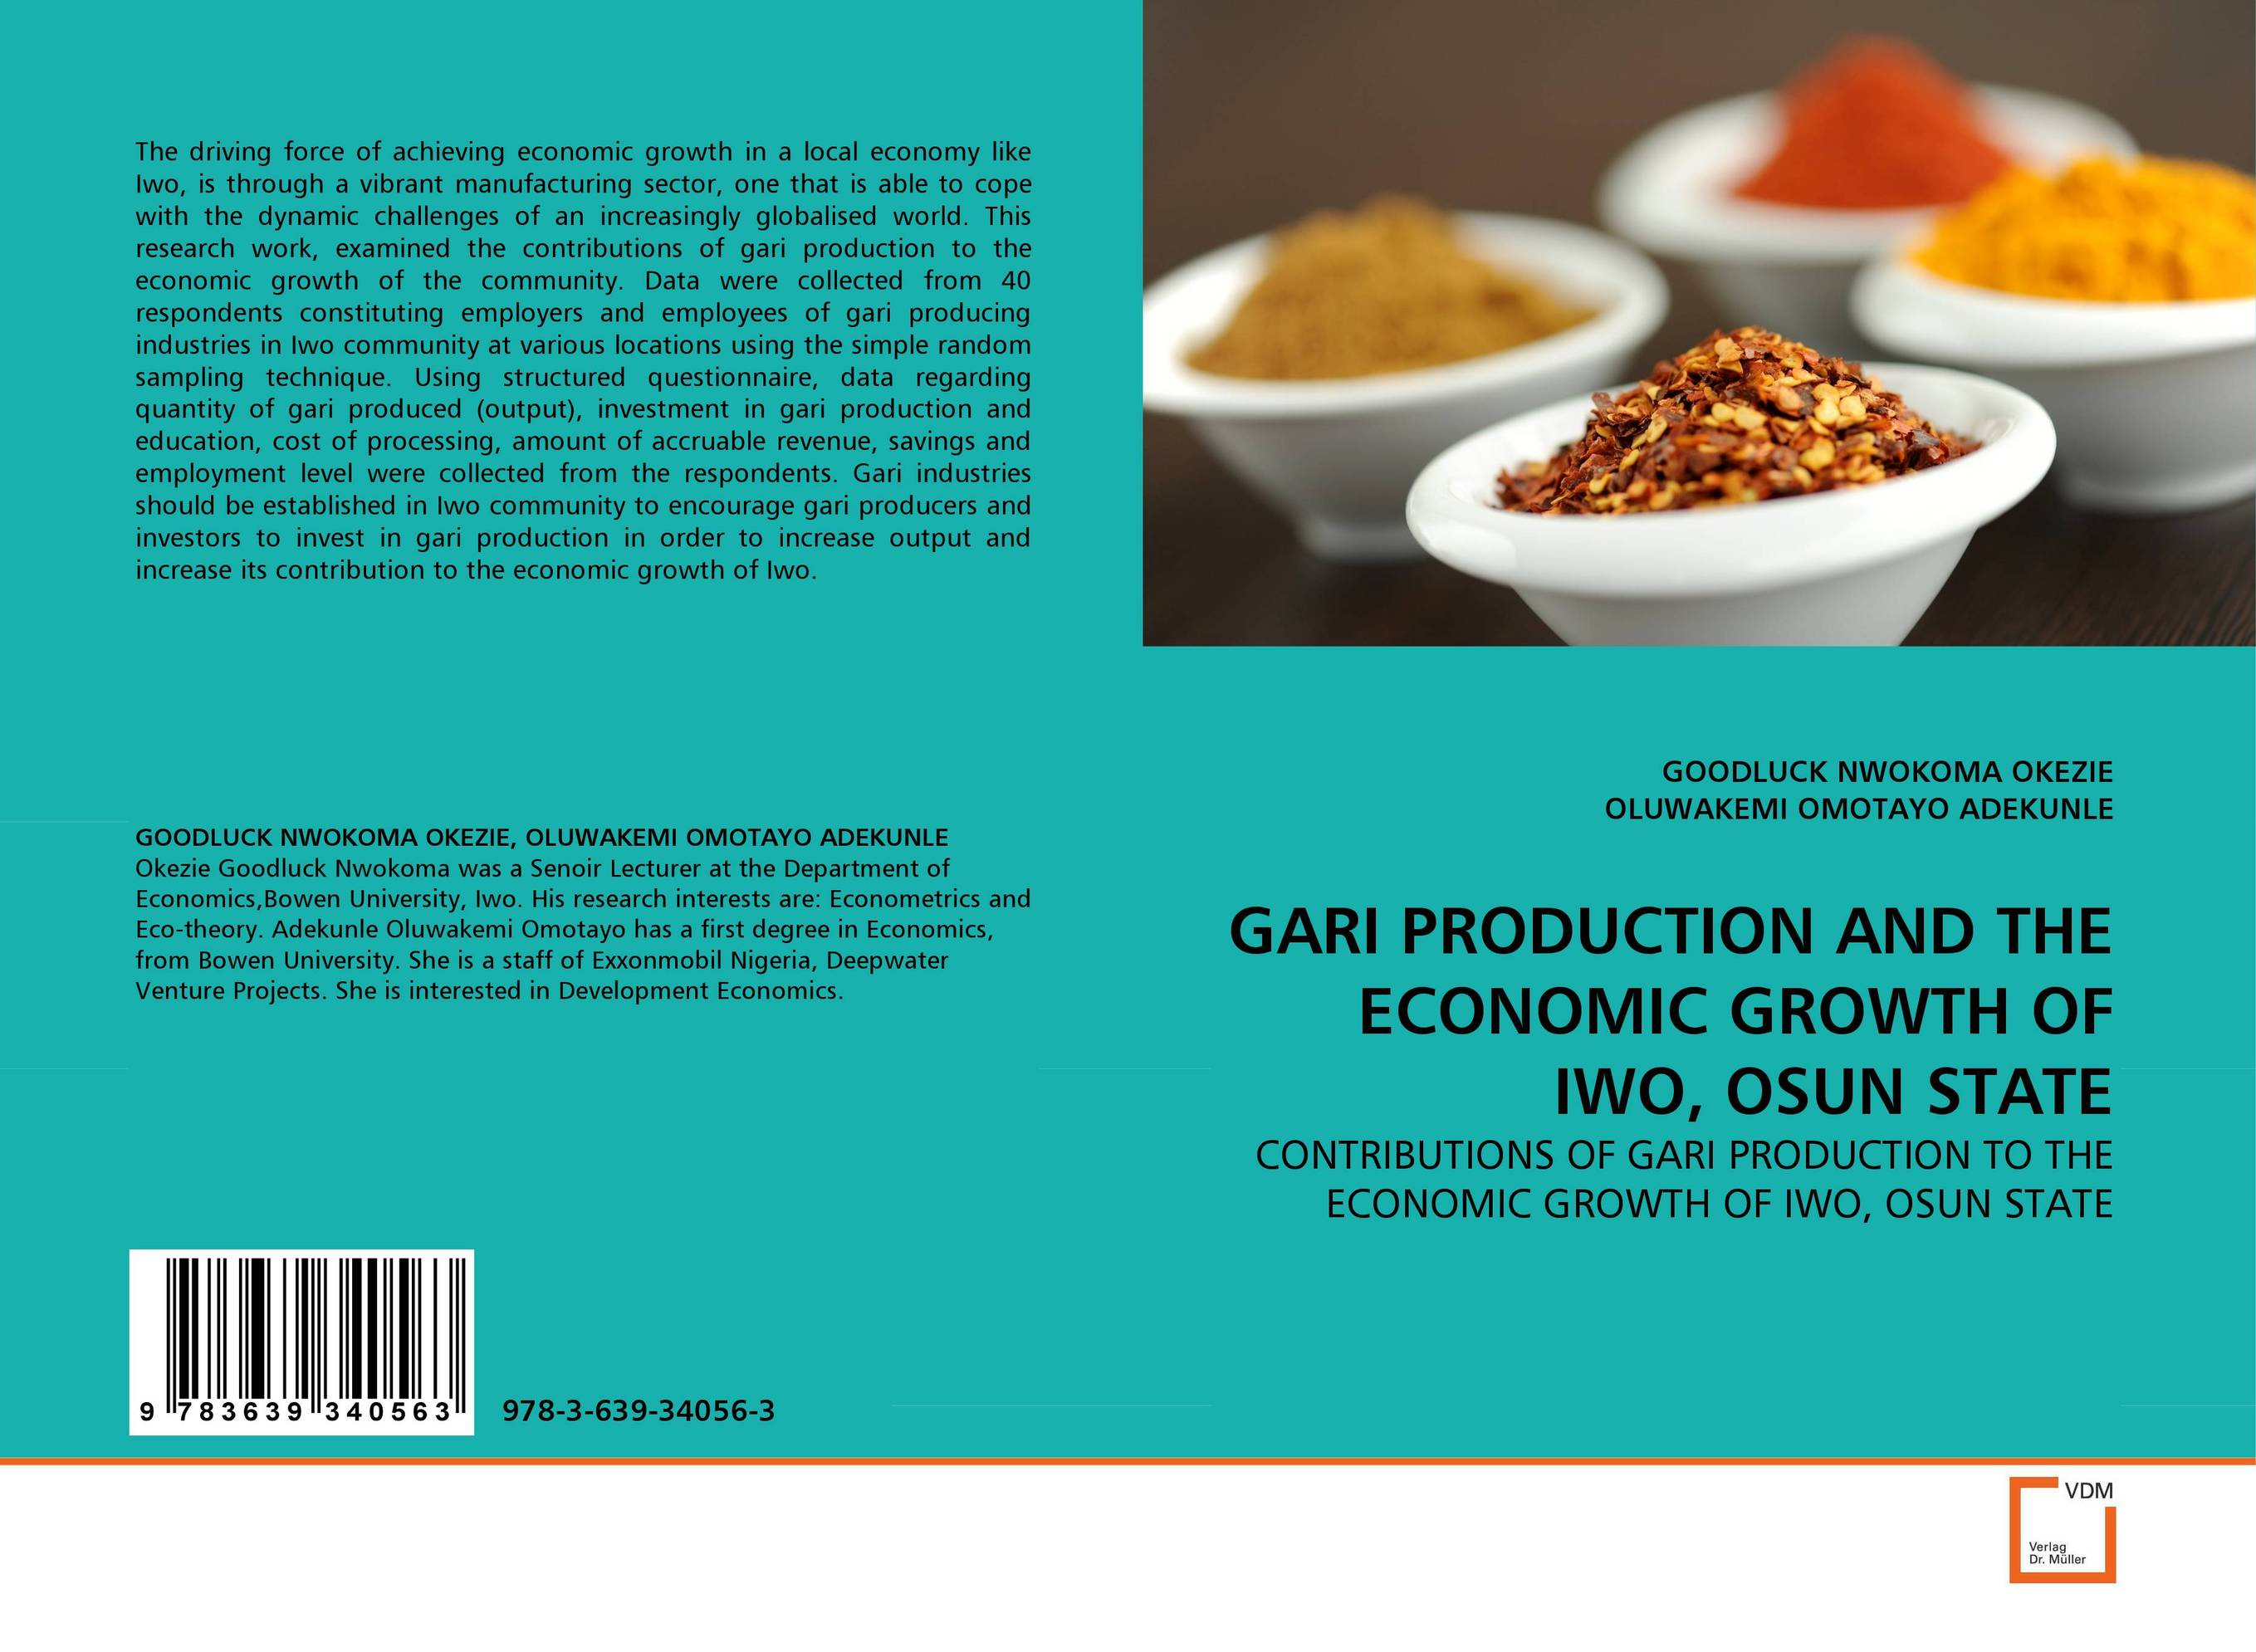 GARI PRODUCTION AND THE ECONOMIC GROWTH OF IWO, OSUN STATE adding value to the citrus pulp by enzyme biotechnology production